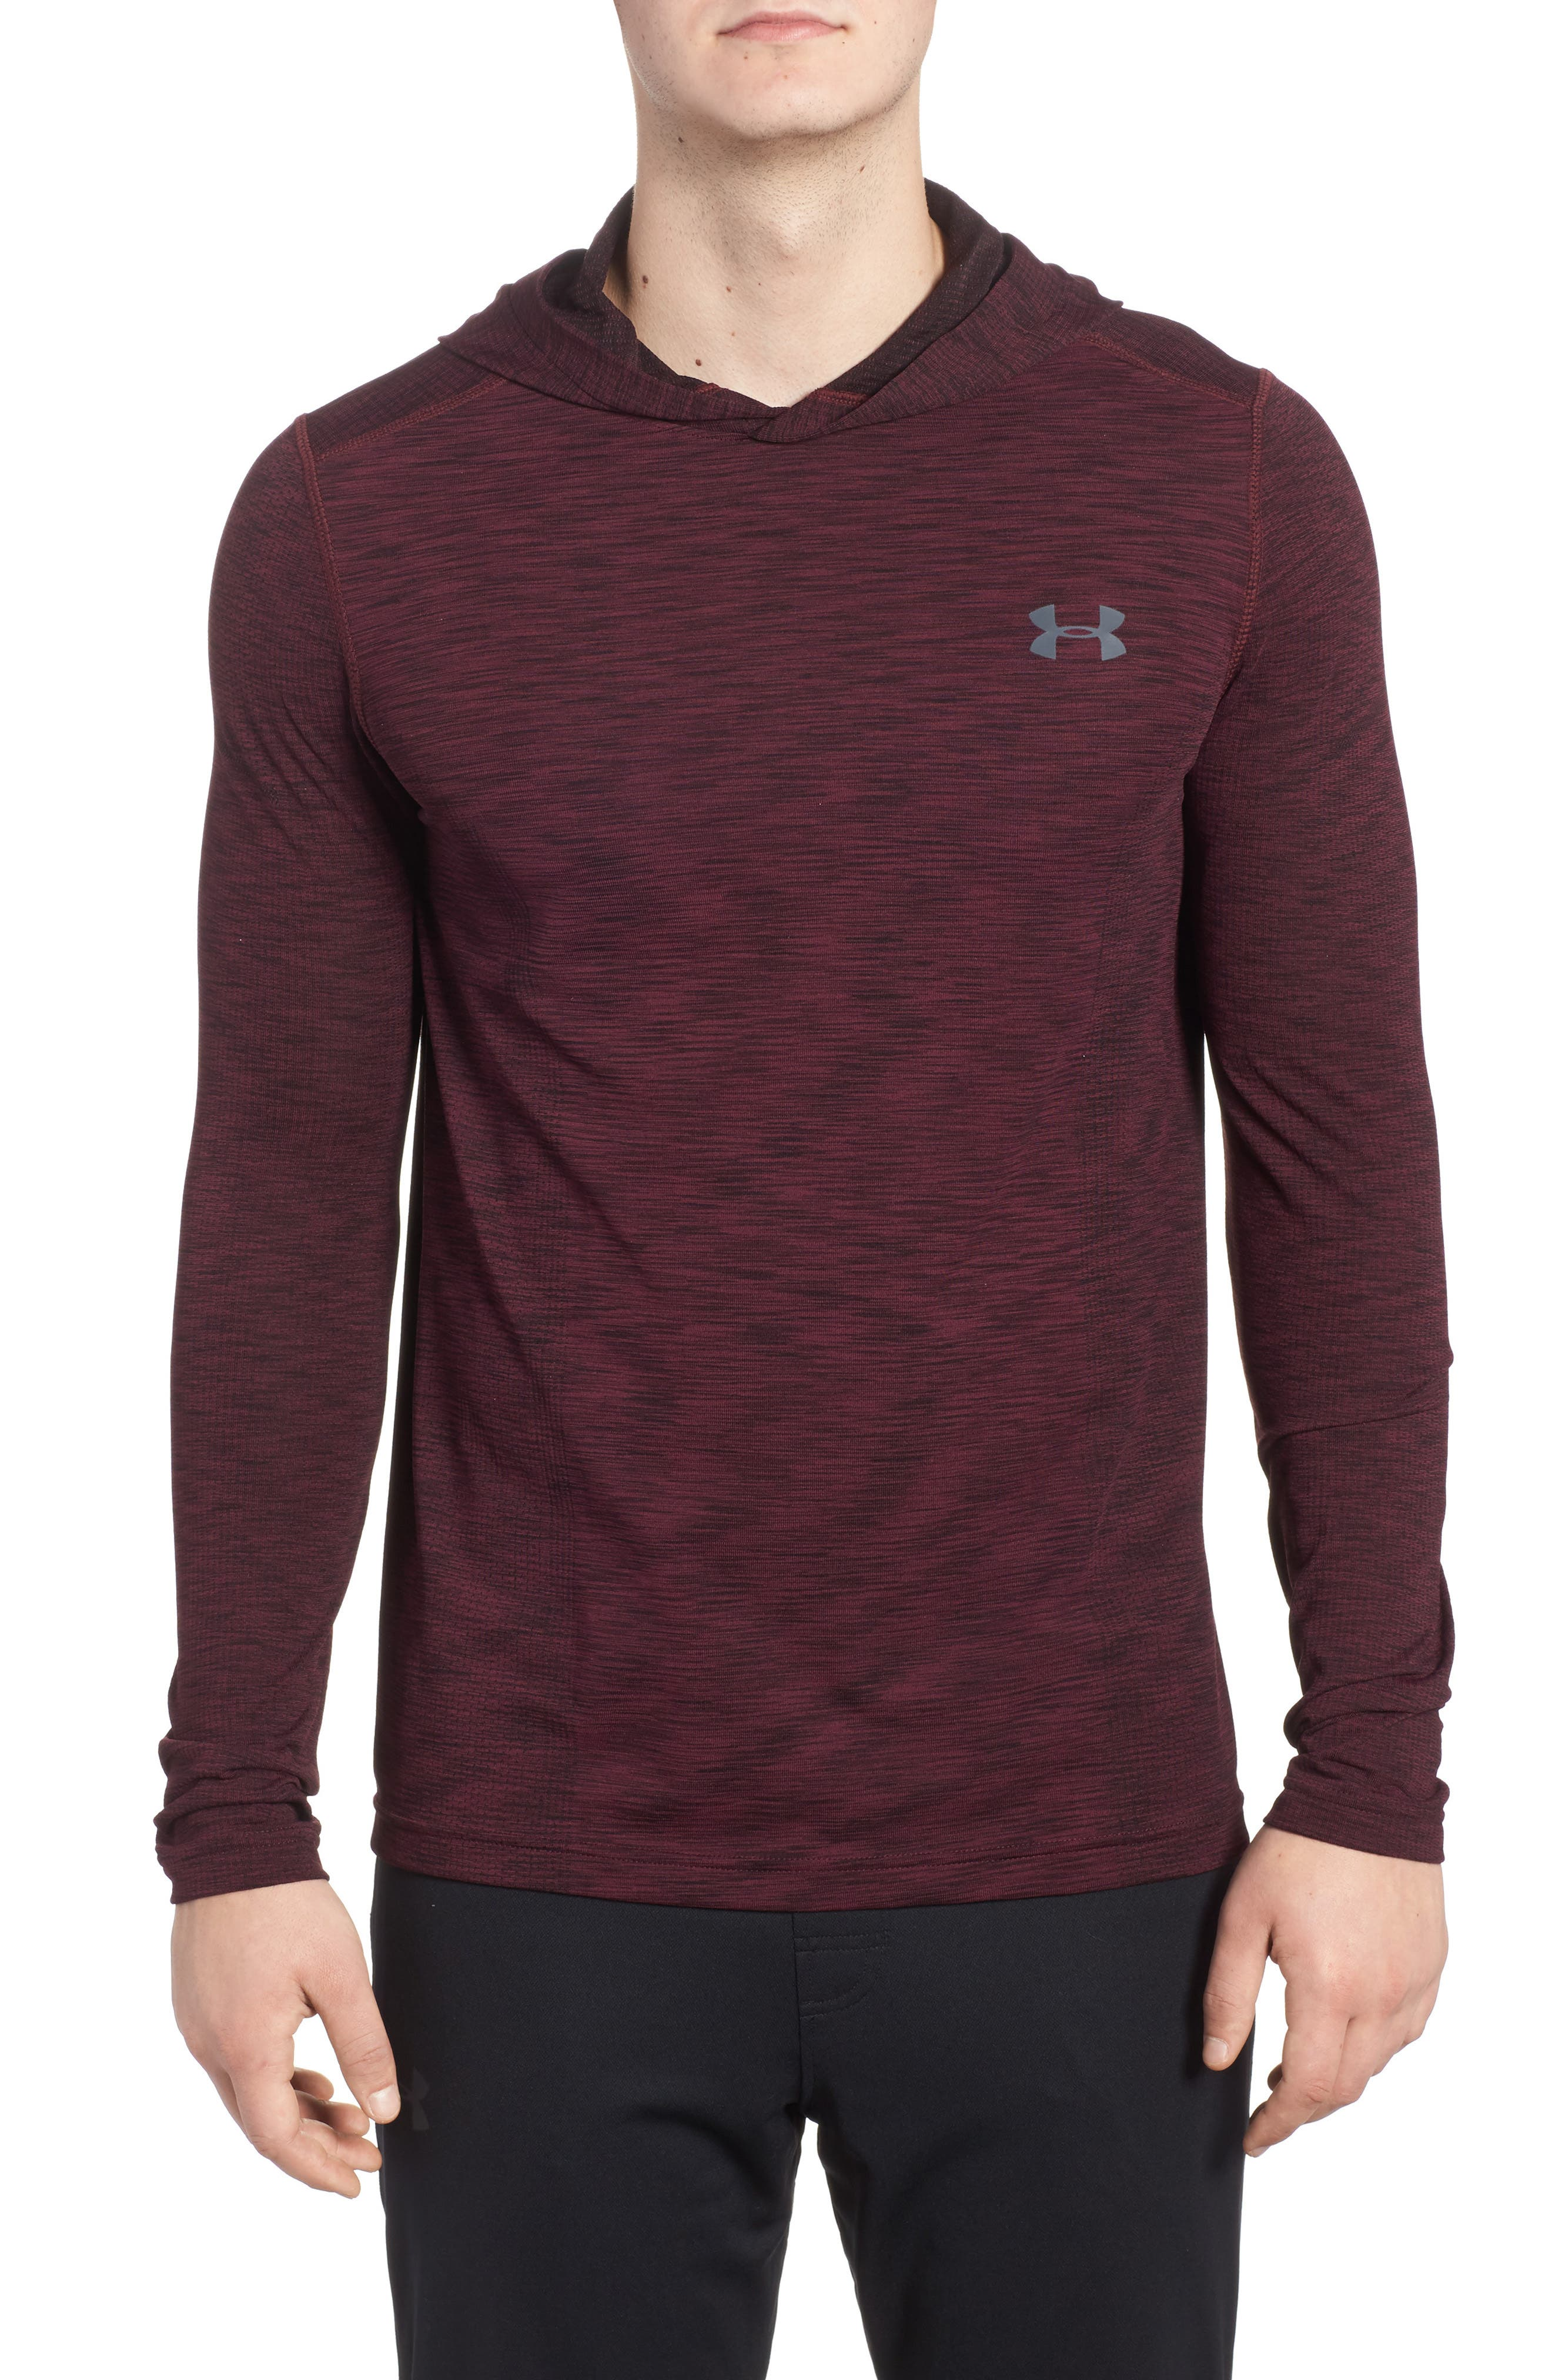 Alternate Image 1 Selected - Under Armour Threadbone Fitted Seamless Hoodie